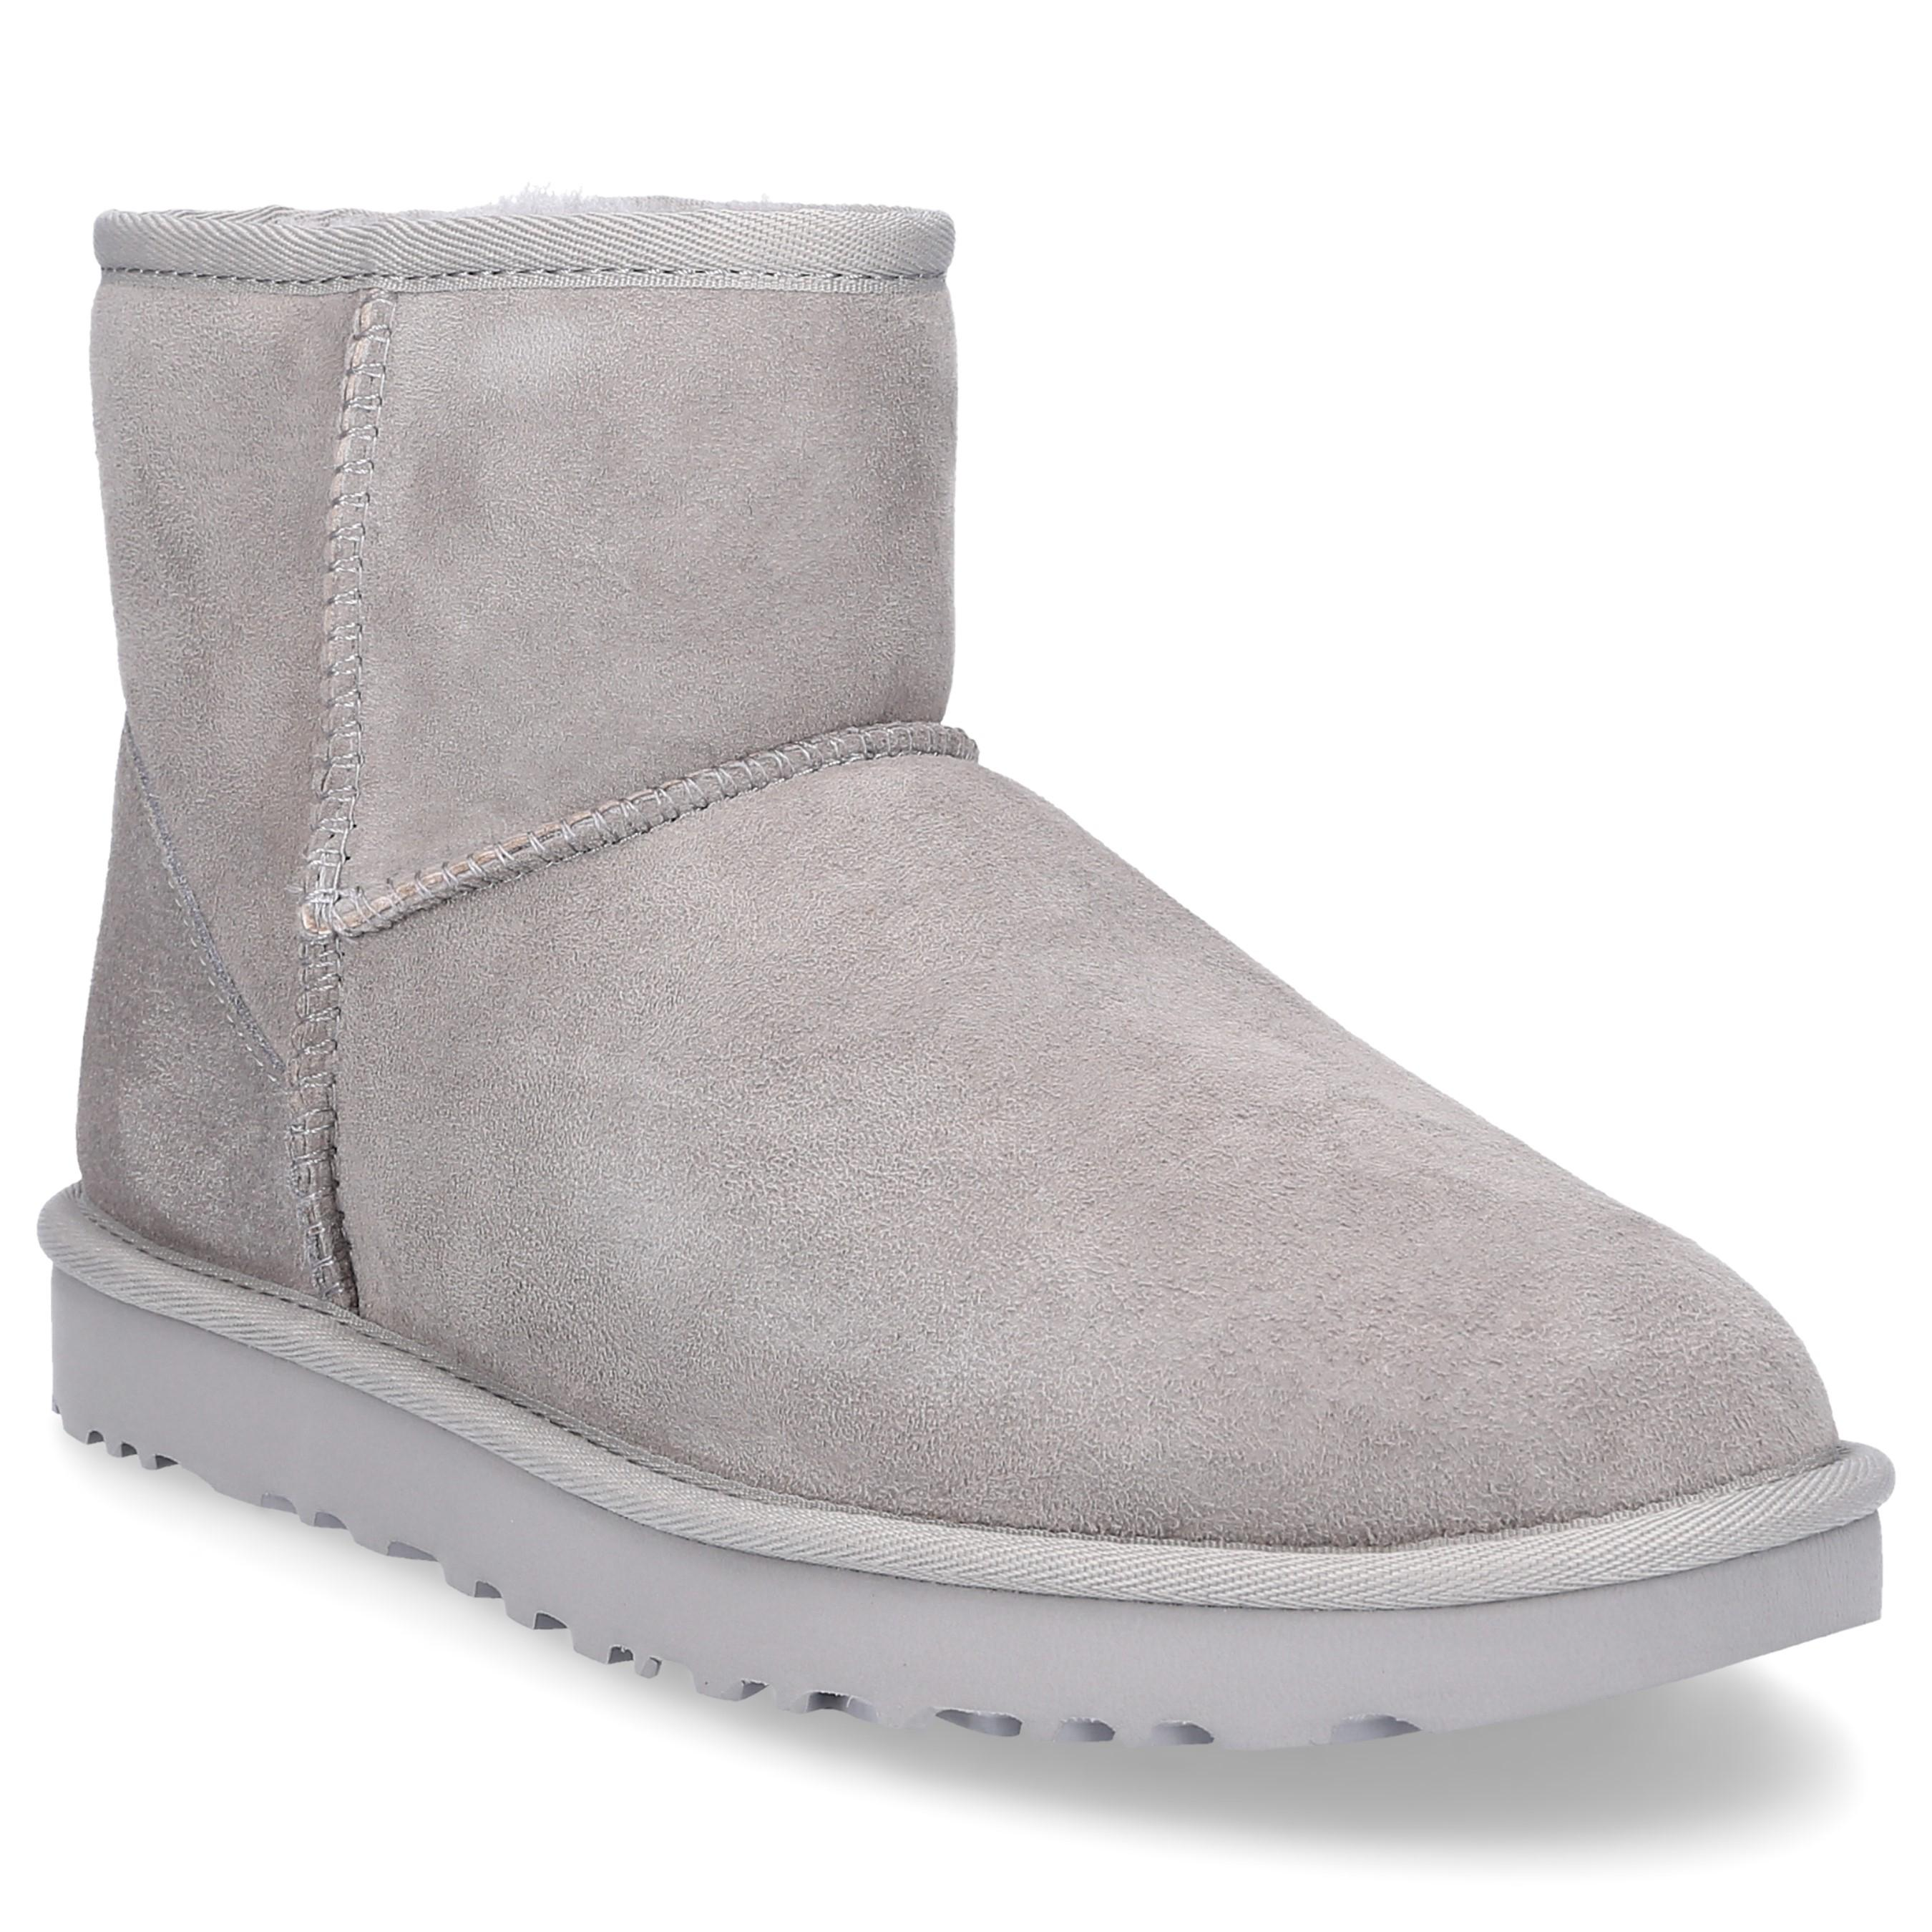 852a23dfcc5 UGG Ankle Boots Classic Mini Ii Suede Logo Grey in Gray - Lyst